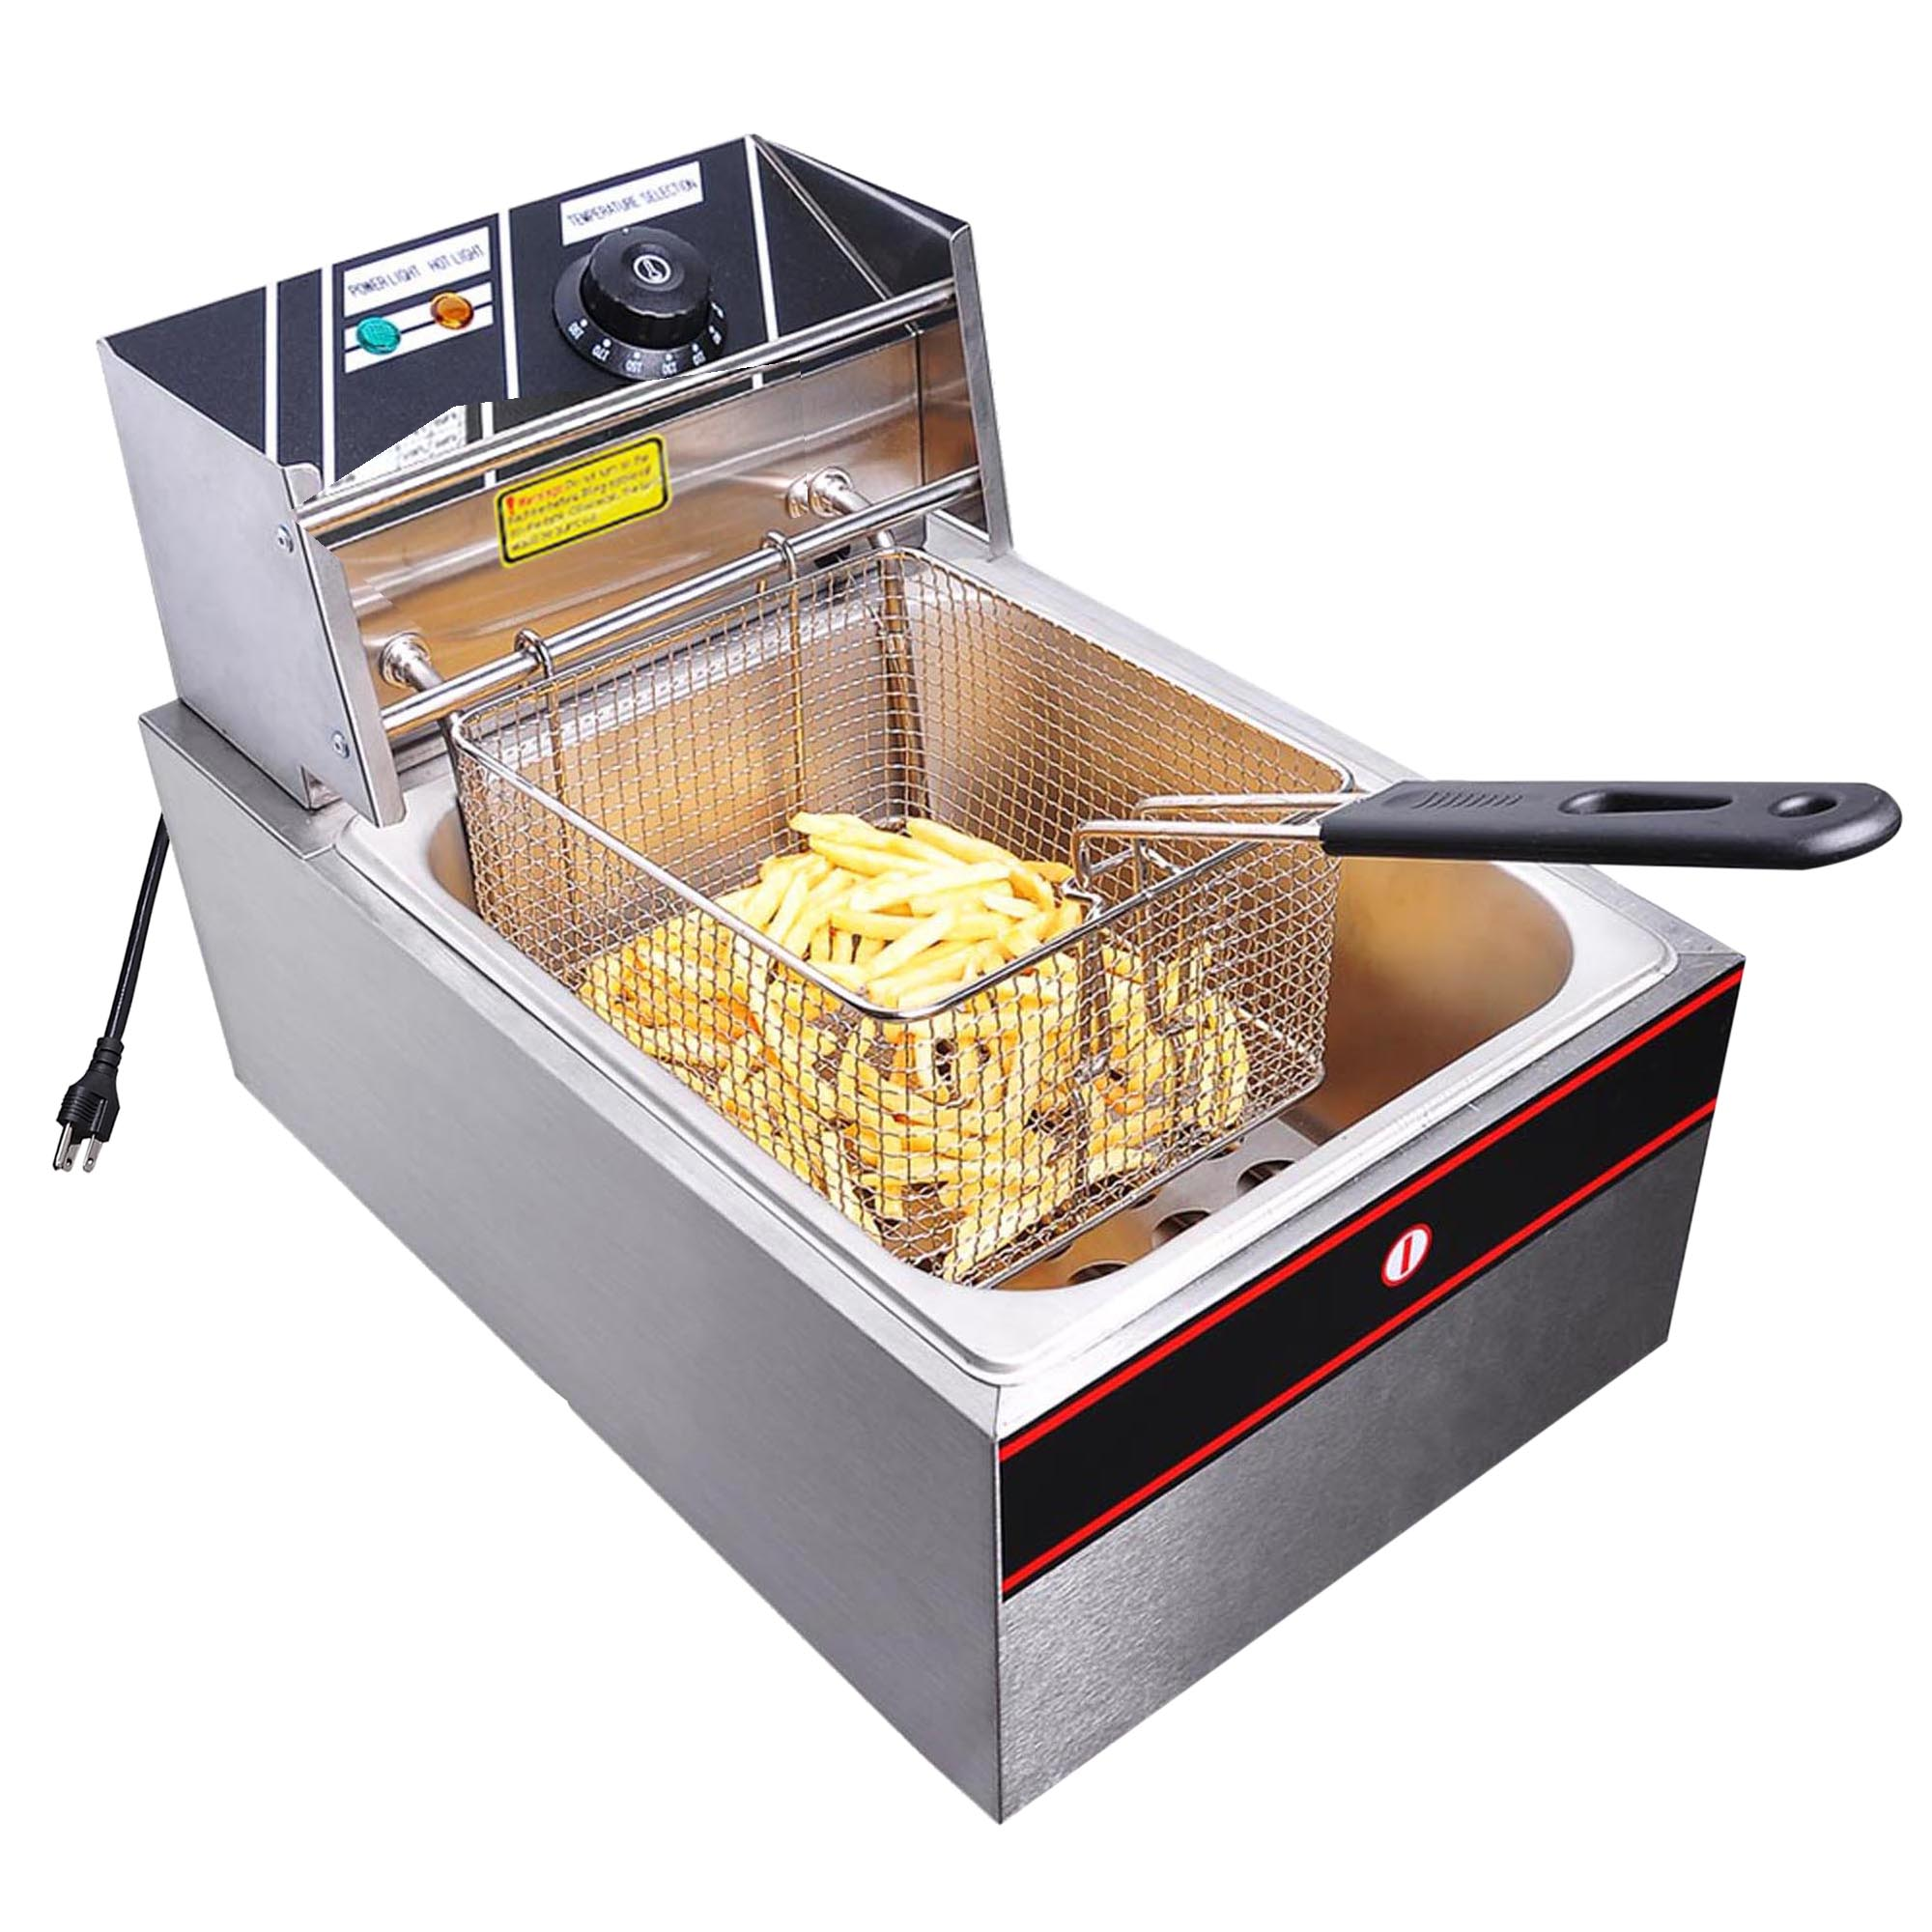 Yescom  6L 2500W Professional Commercial Electric Countertop Deep Fryer Basket French Fry Restaurant Kitchen